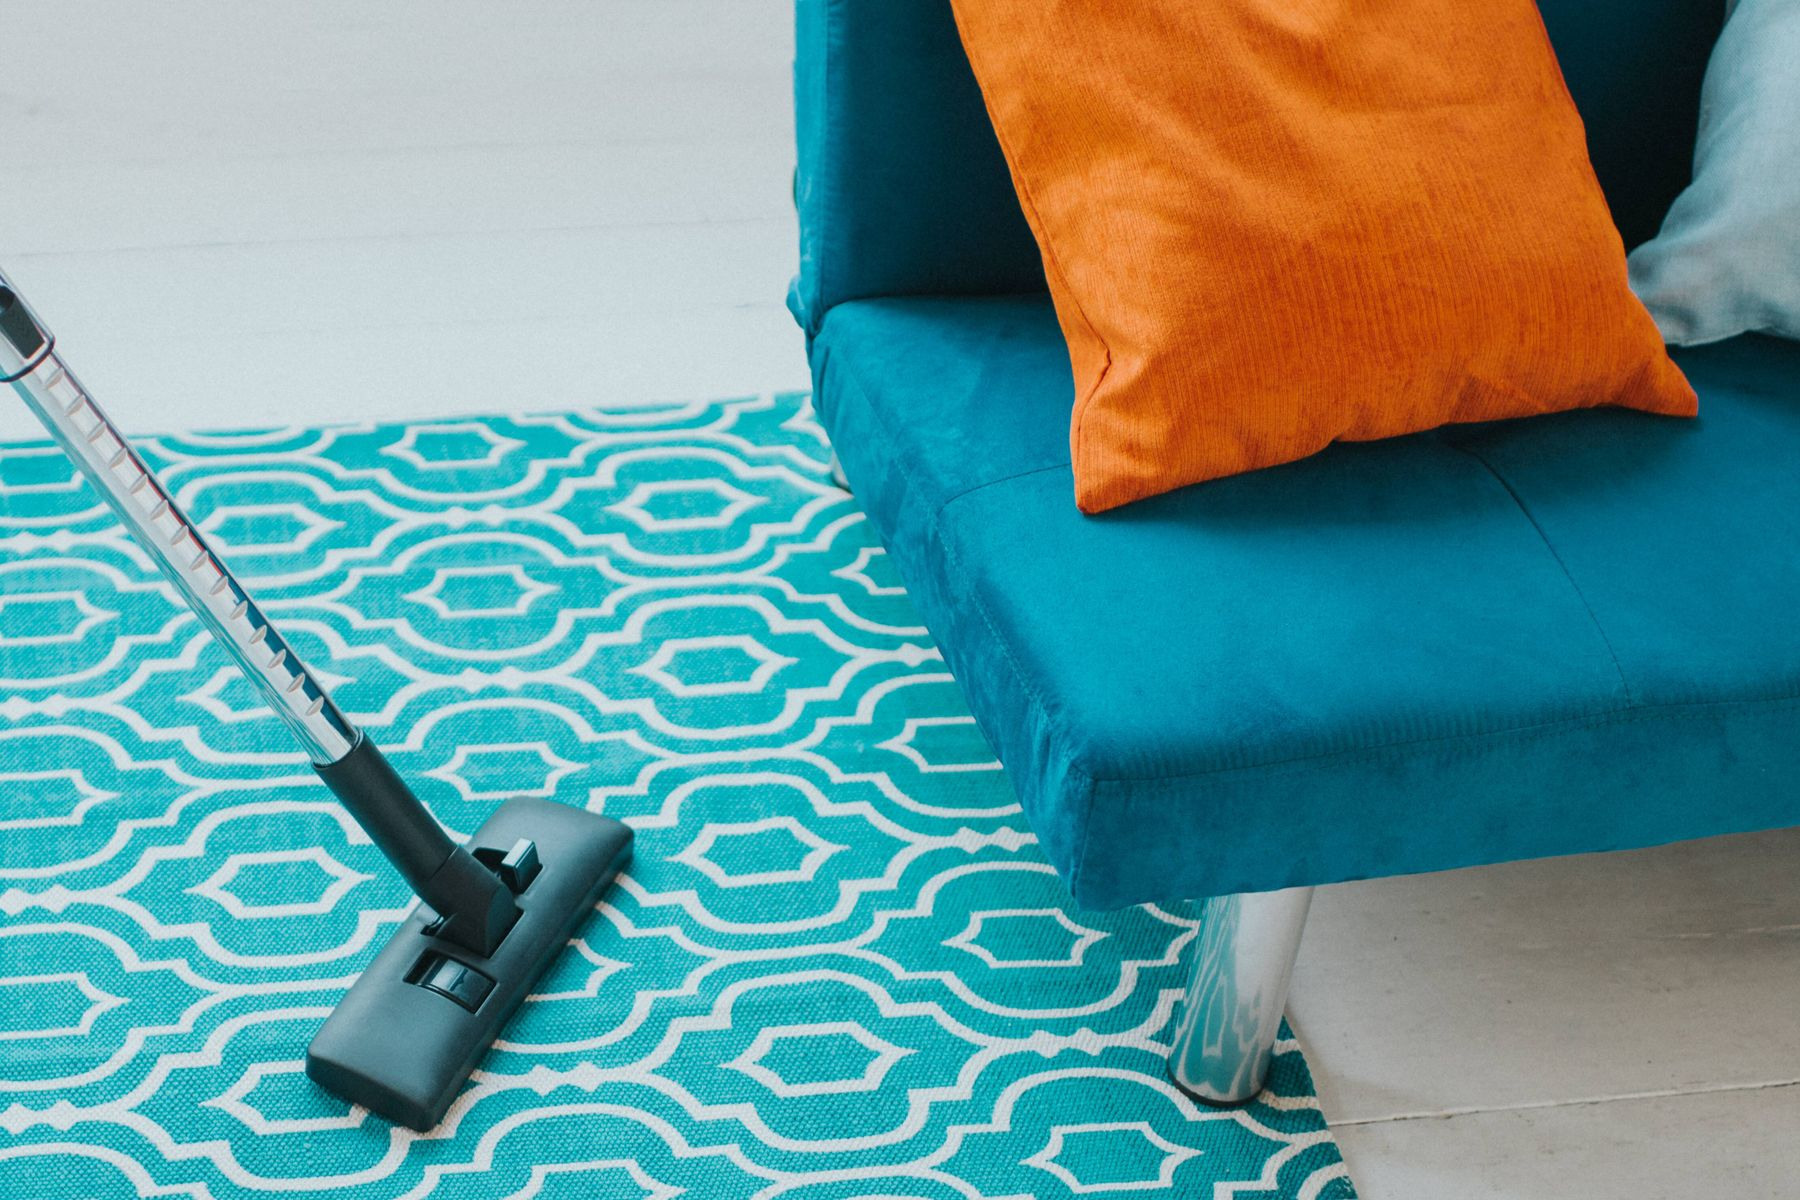 stop-rugs-moving-turquoise-carpet-on-white-floor